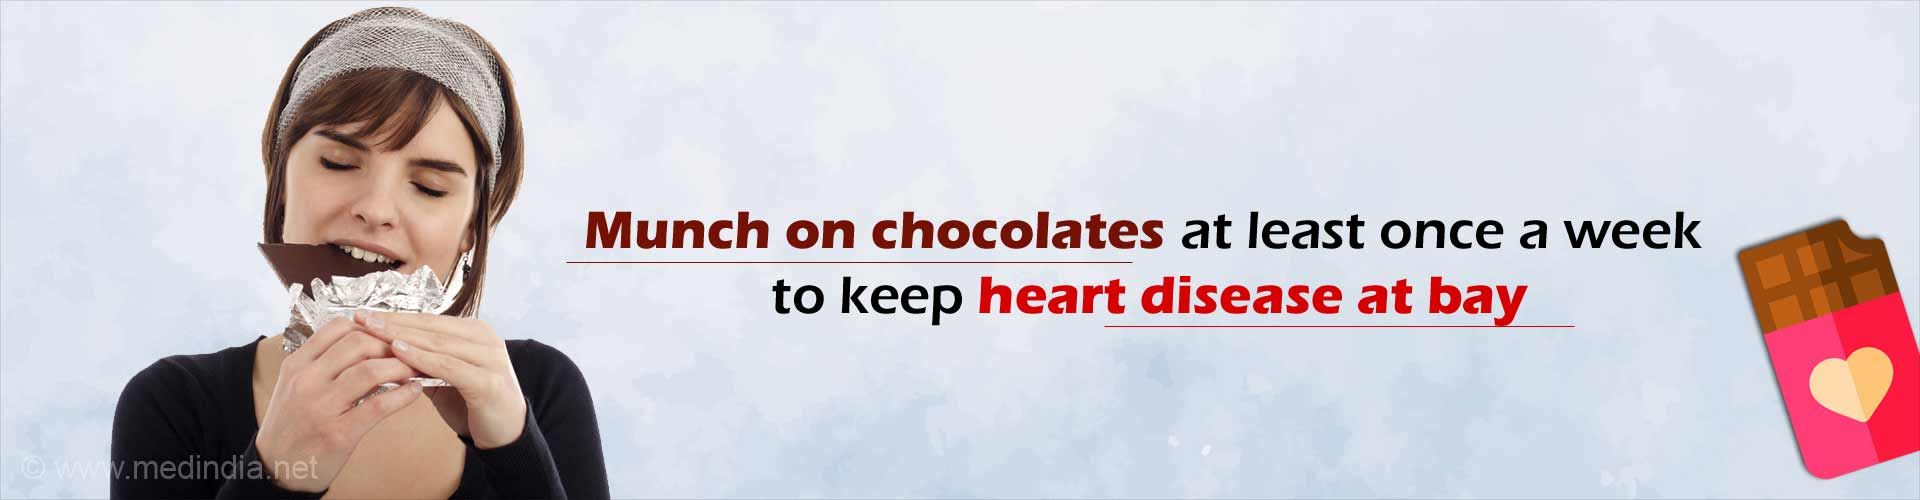 Chocolates 'Good' for the Heart